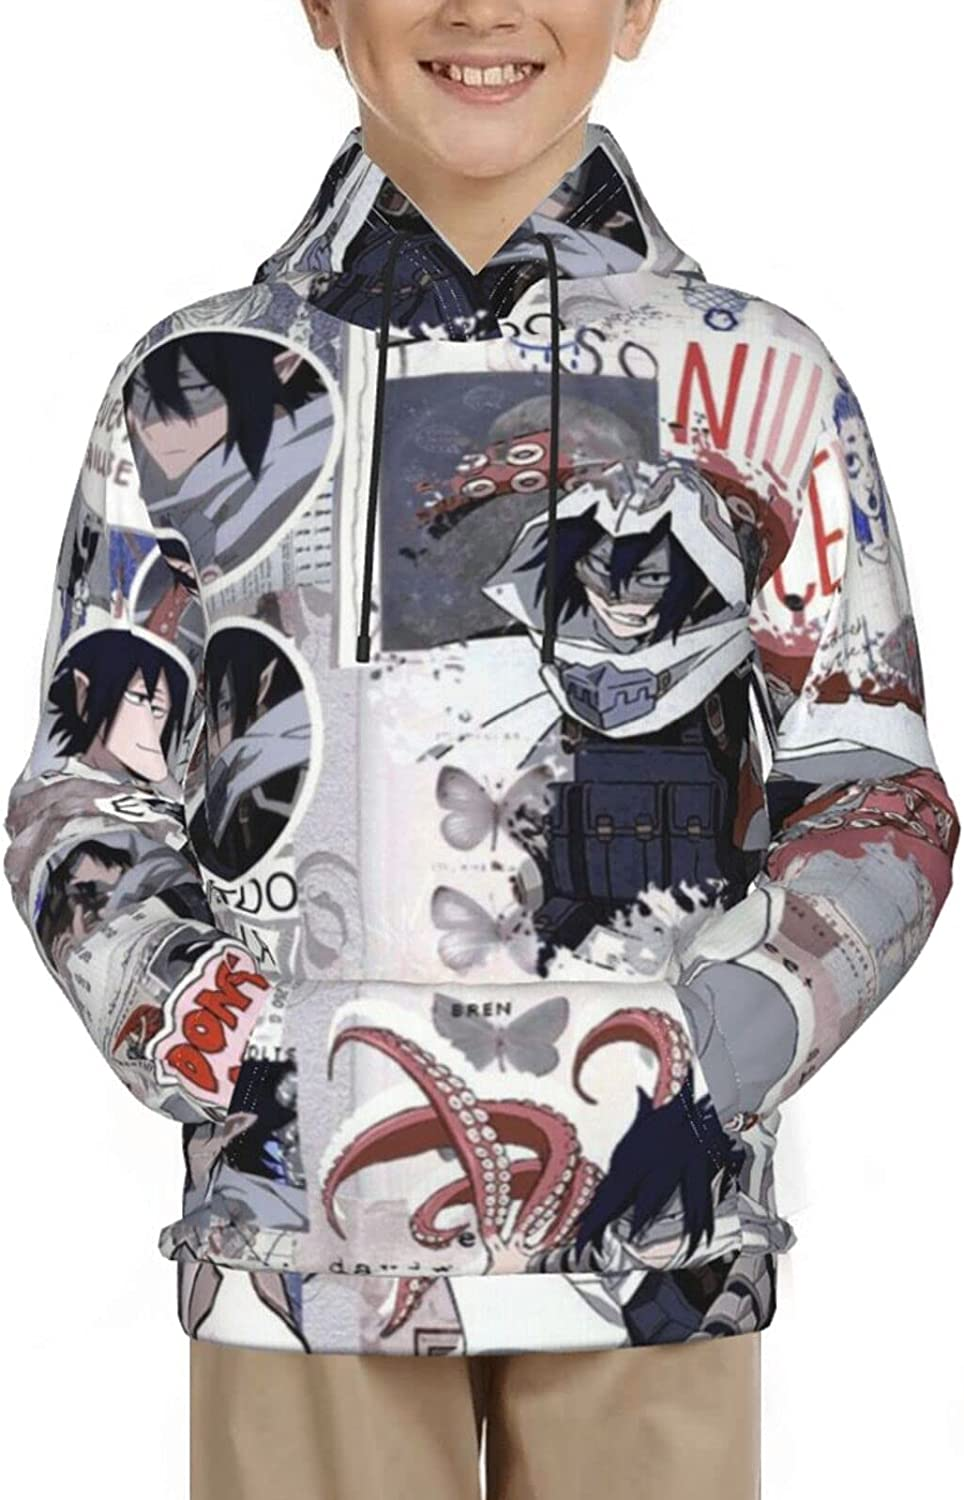 Boys And Girls Youth Casual Sweatshirt My Hero Academia Stain 3d Digital Print Hoodie With Pockets